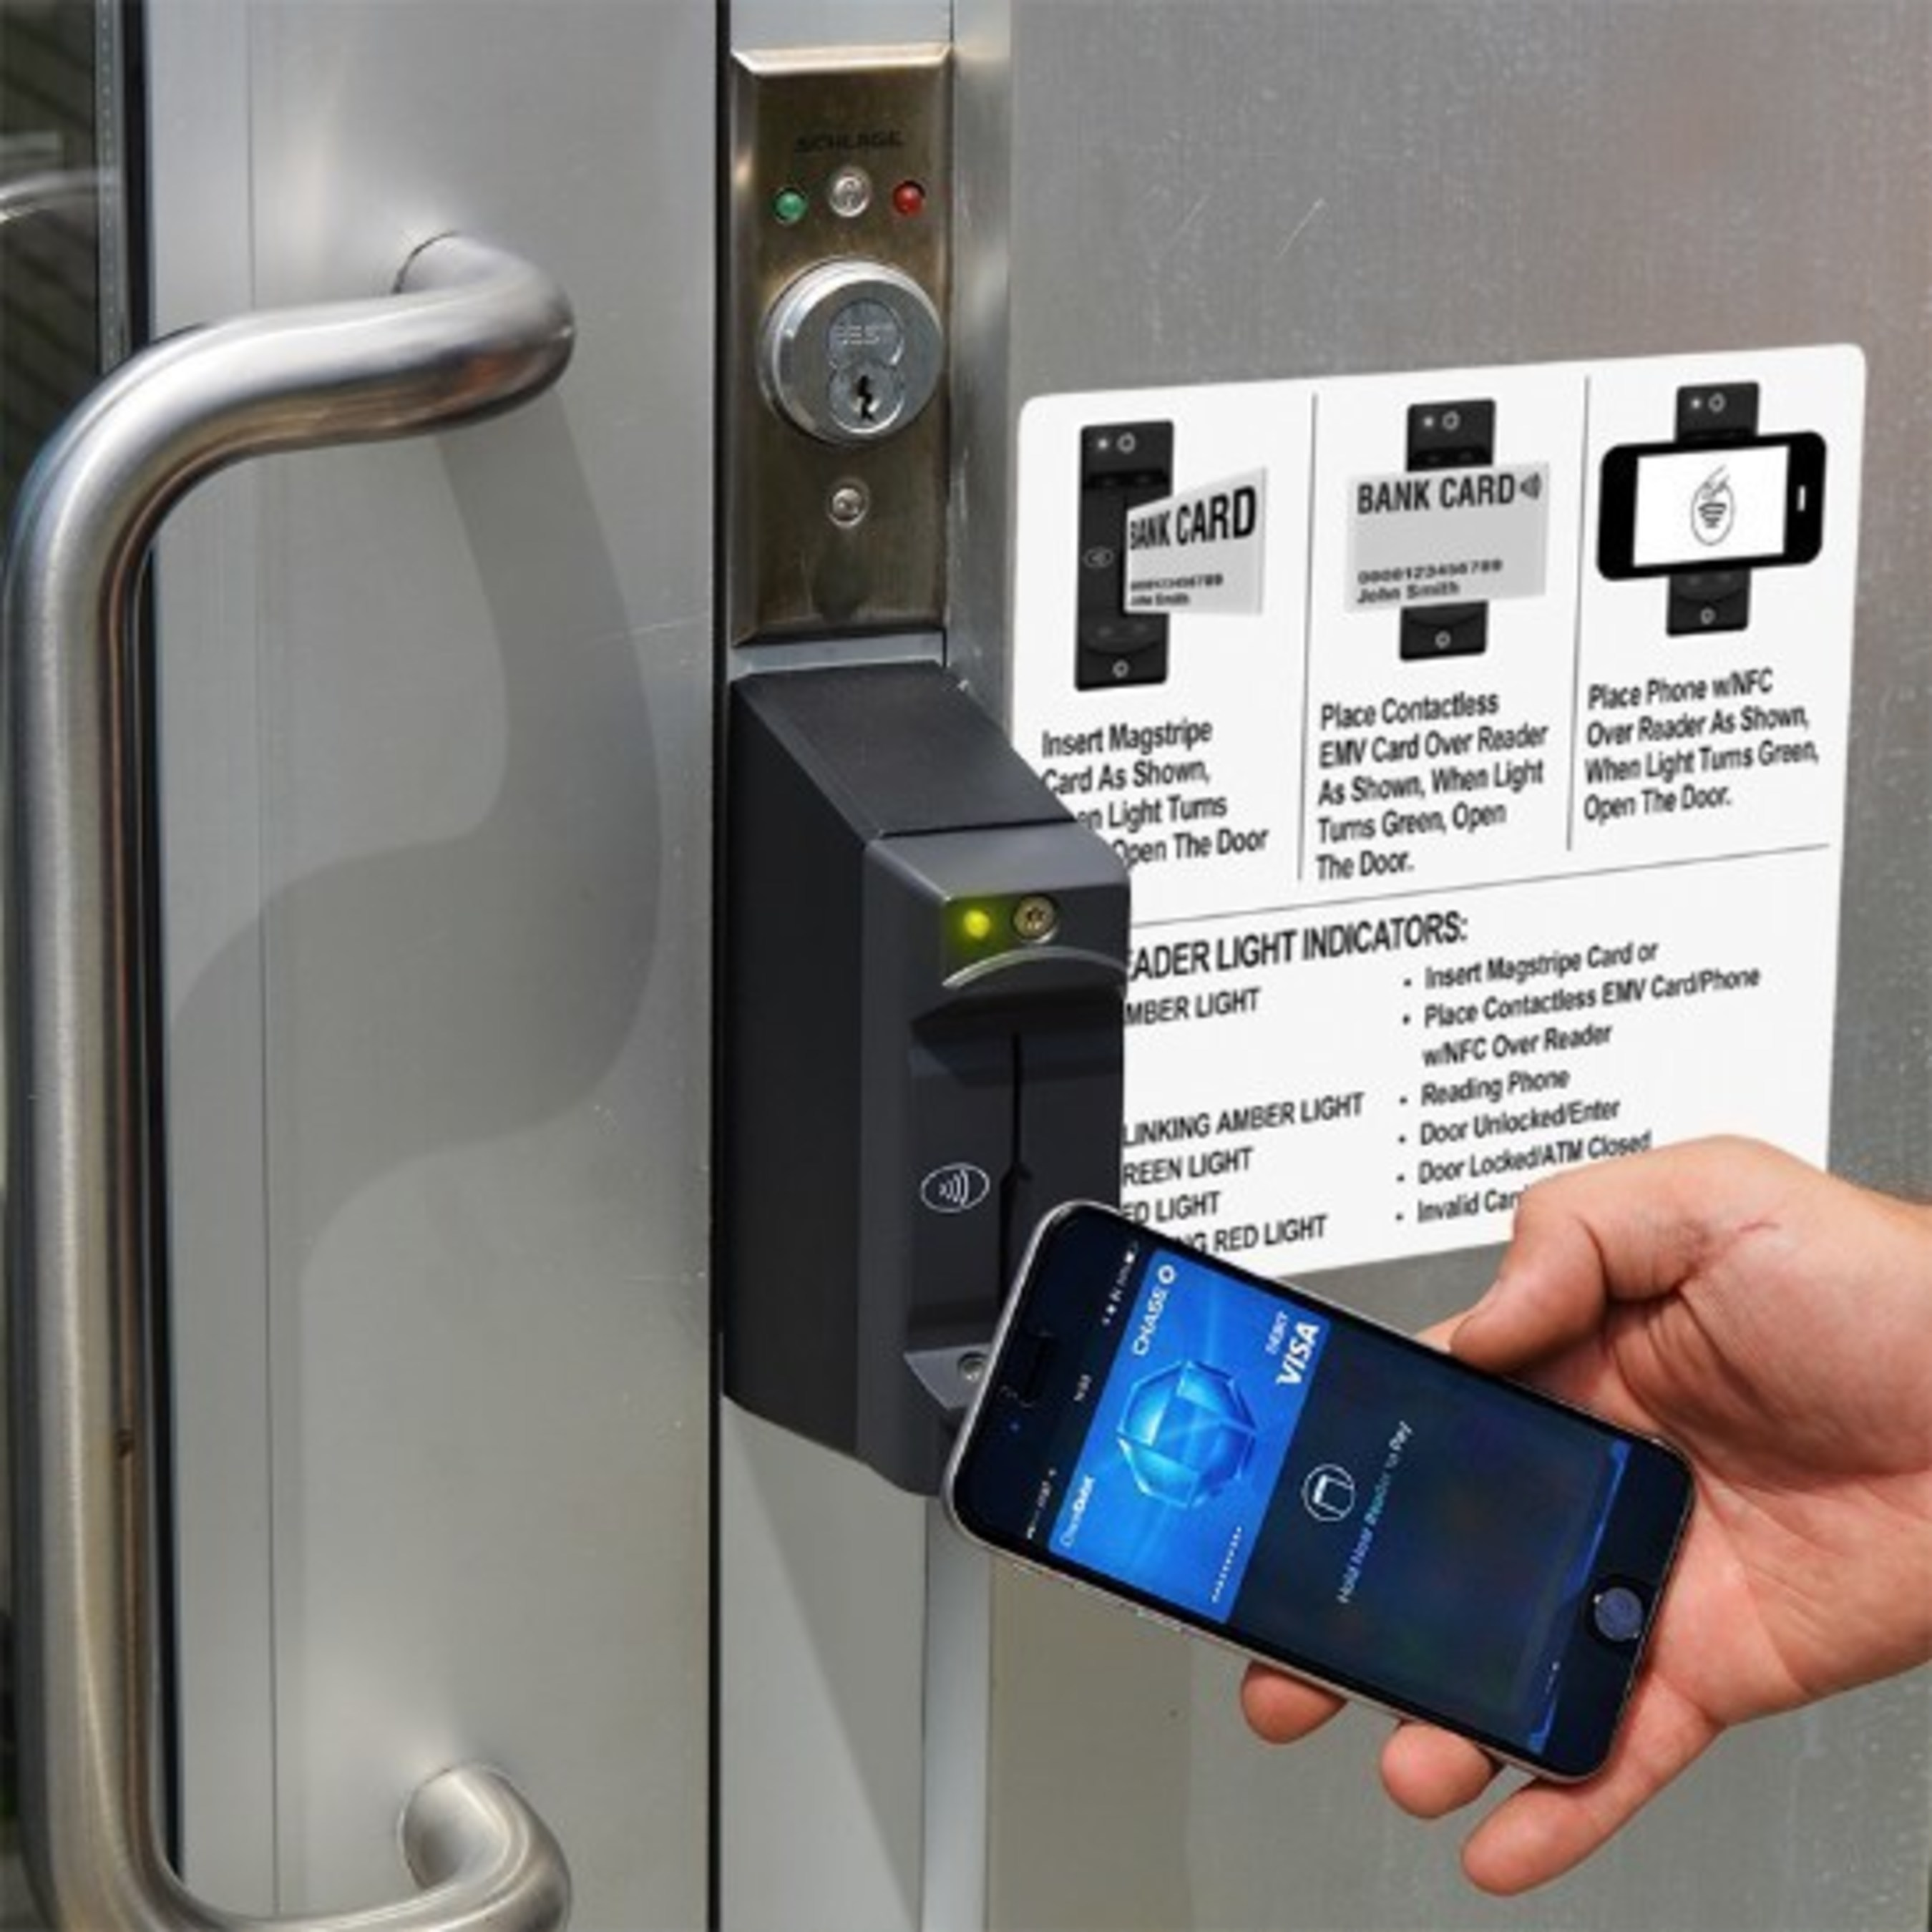 Parabit Adds Mobile NFC / Contactless EMV Access Control to secure ATM Lobbies with Overlay and RFID Skimmer Detection - MMR